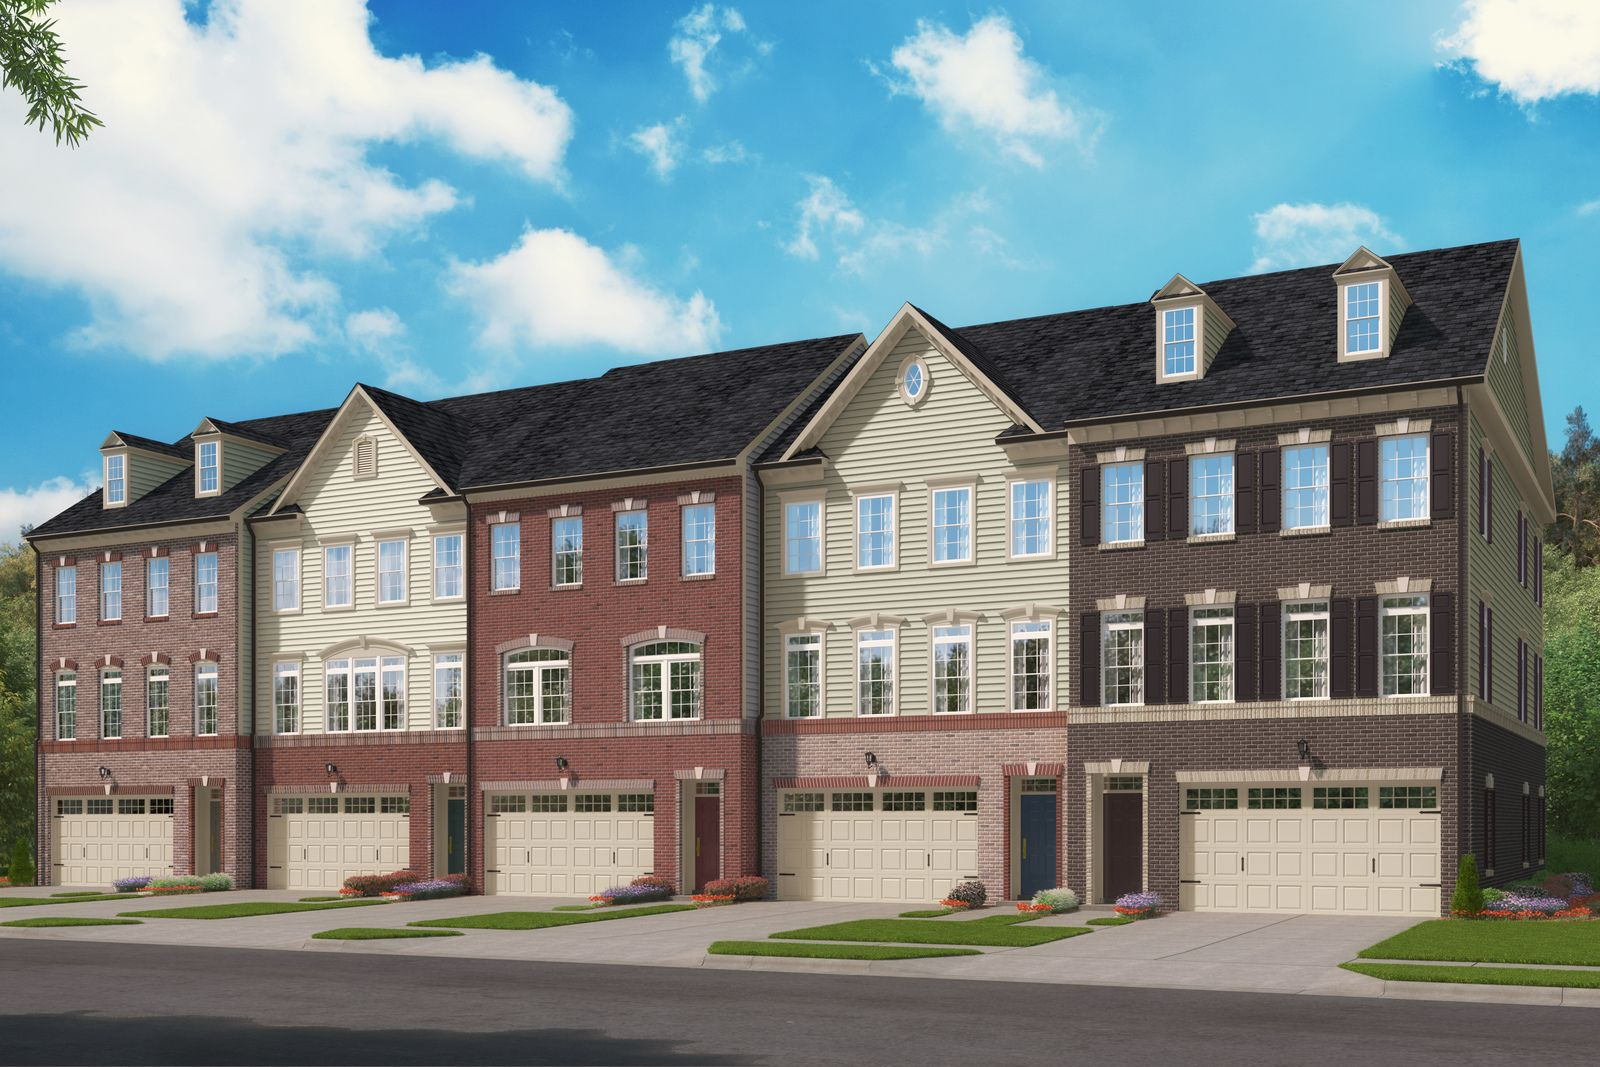 Howard County's Best Value for Grand Townhome Living:Introducing The Reserve at Dorsey's Ridge, a private enclave of NVHomes' largest and most luxurious townhomes. Sales begin this Fall from the mid $600s. Join our VIP list today!